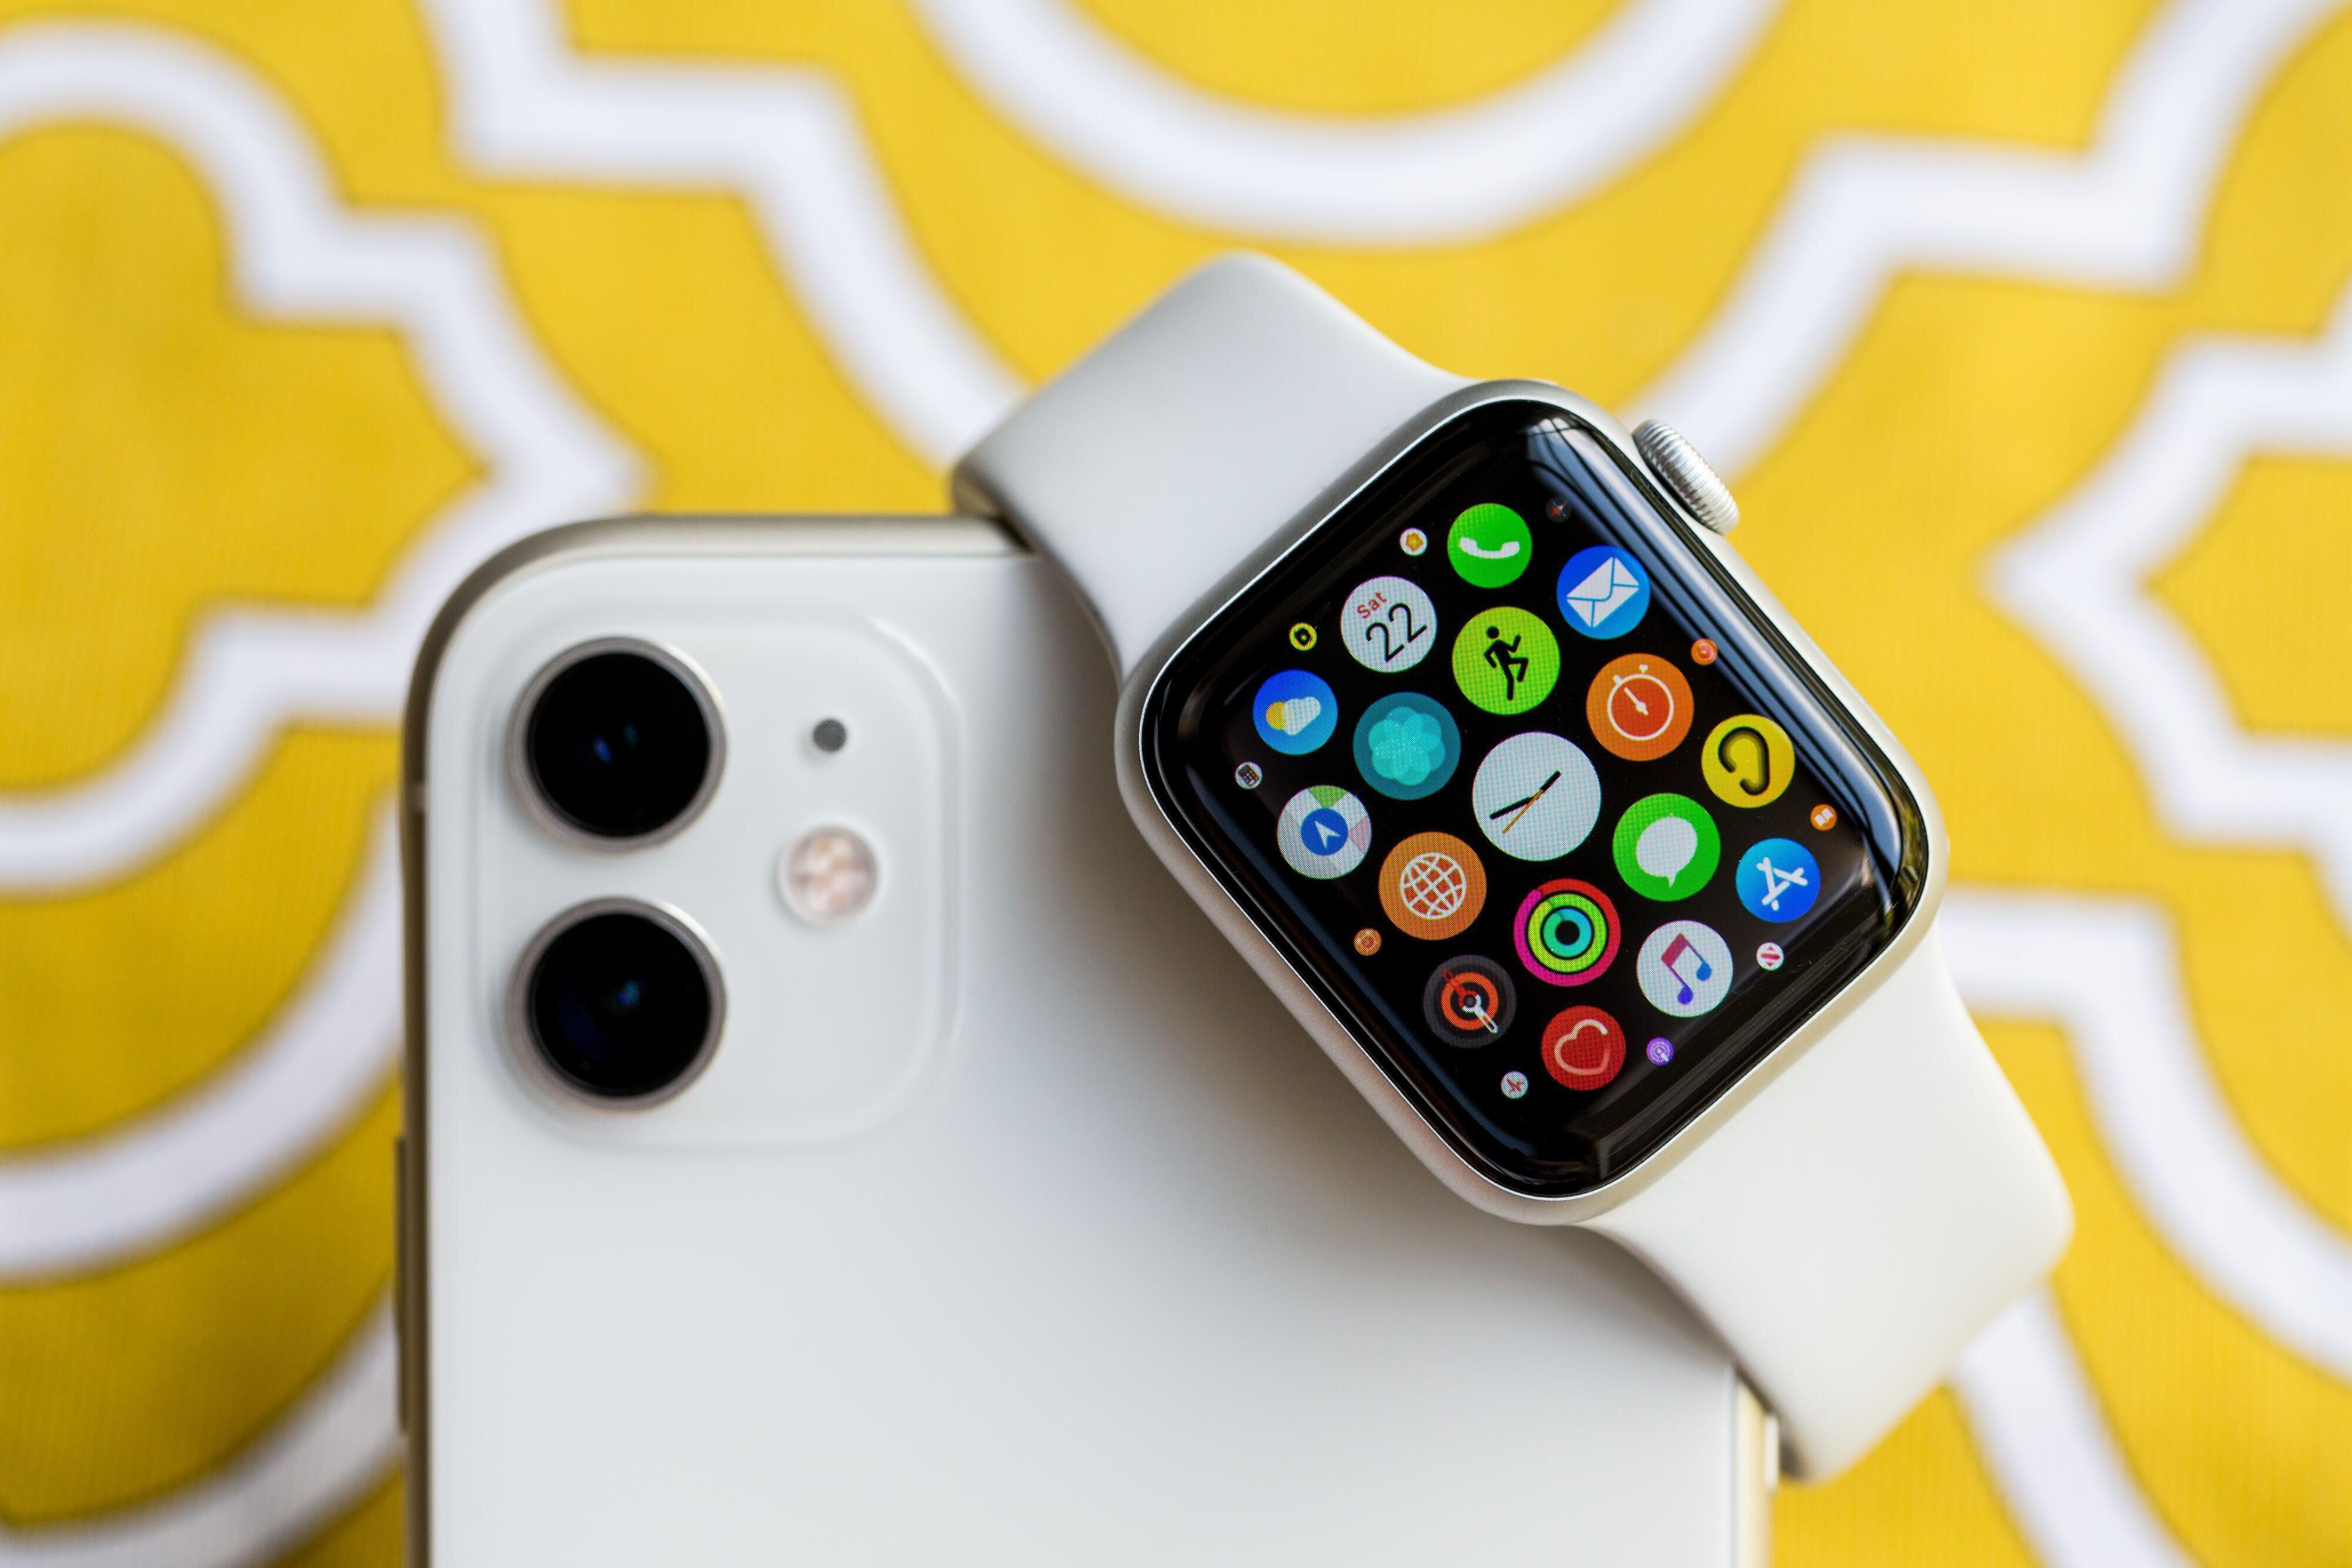 Apple Watch 7 Settings You Should Change Right Away Apple Watch Apps New Apple Watch Apple Watch Waterproof